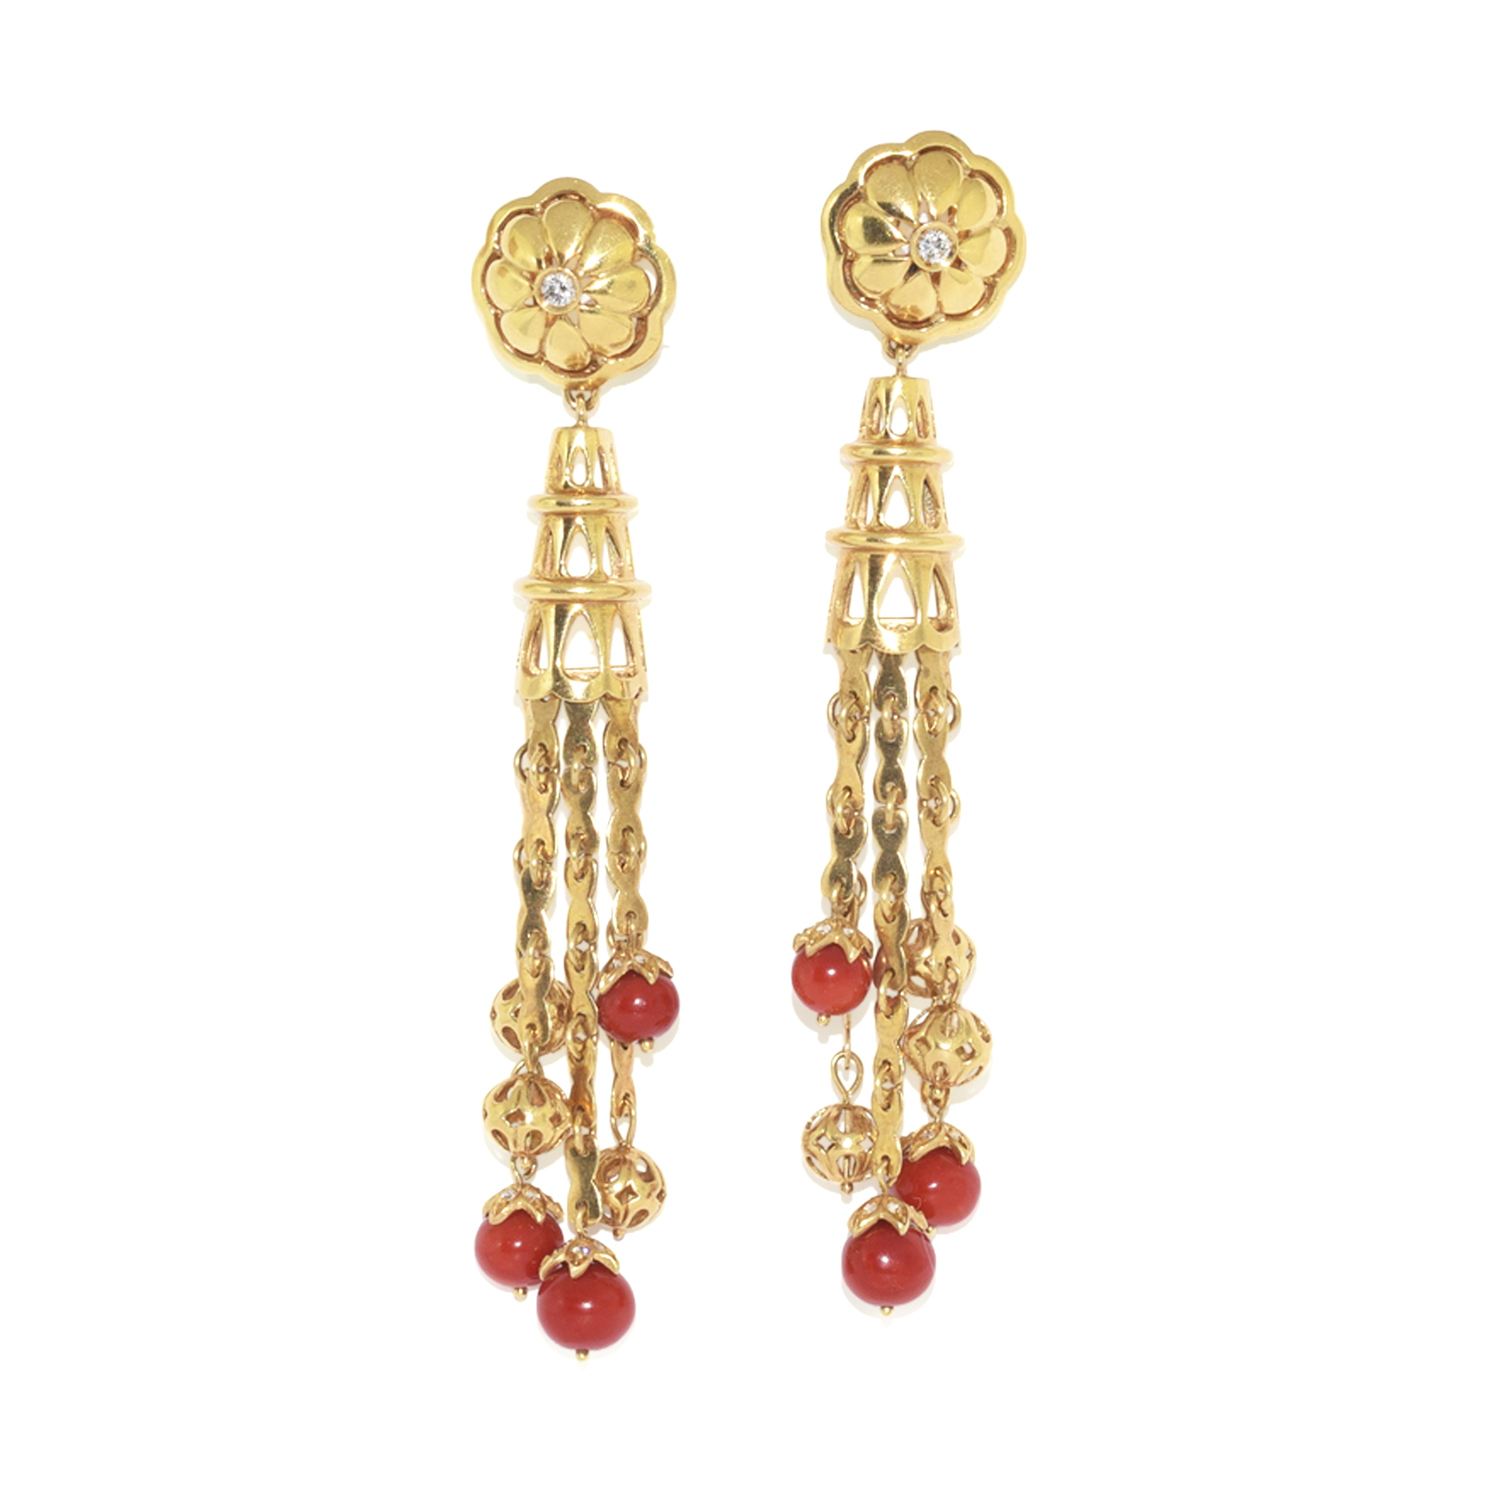 18K Yellow Gold and Coral Bead Pendant Earrings, Serial FL38769